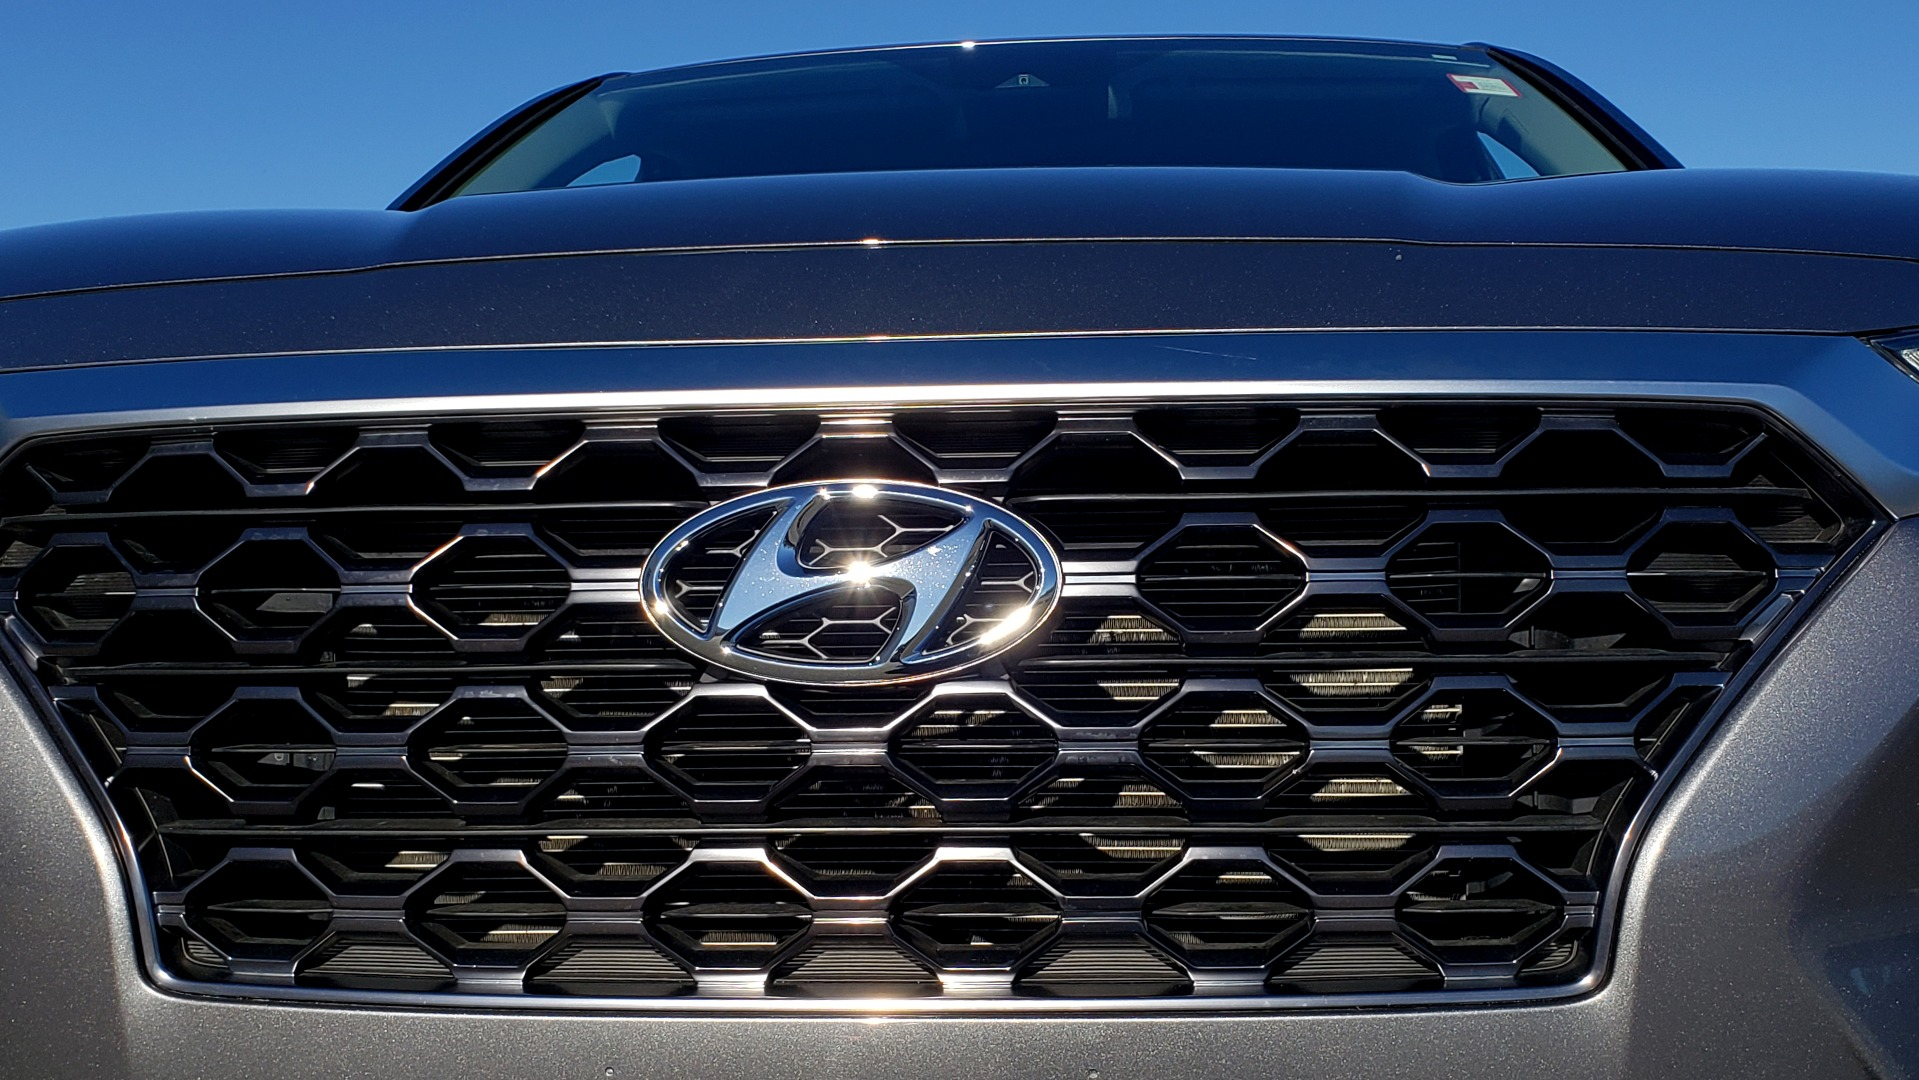 Used 2019 Hyundai SANTA FE SE / 2.4L 4-CYL / 8-SPD AUTO / BLIND SPOT / LANE KEEP ASSIST for sale Sold at Formula Imports in Charlotte NC 28227 27